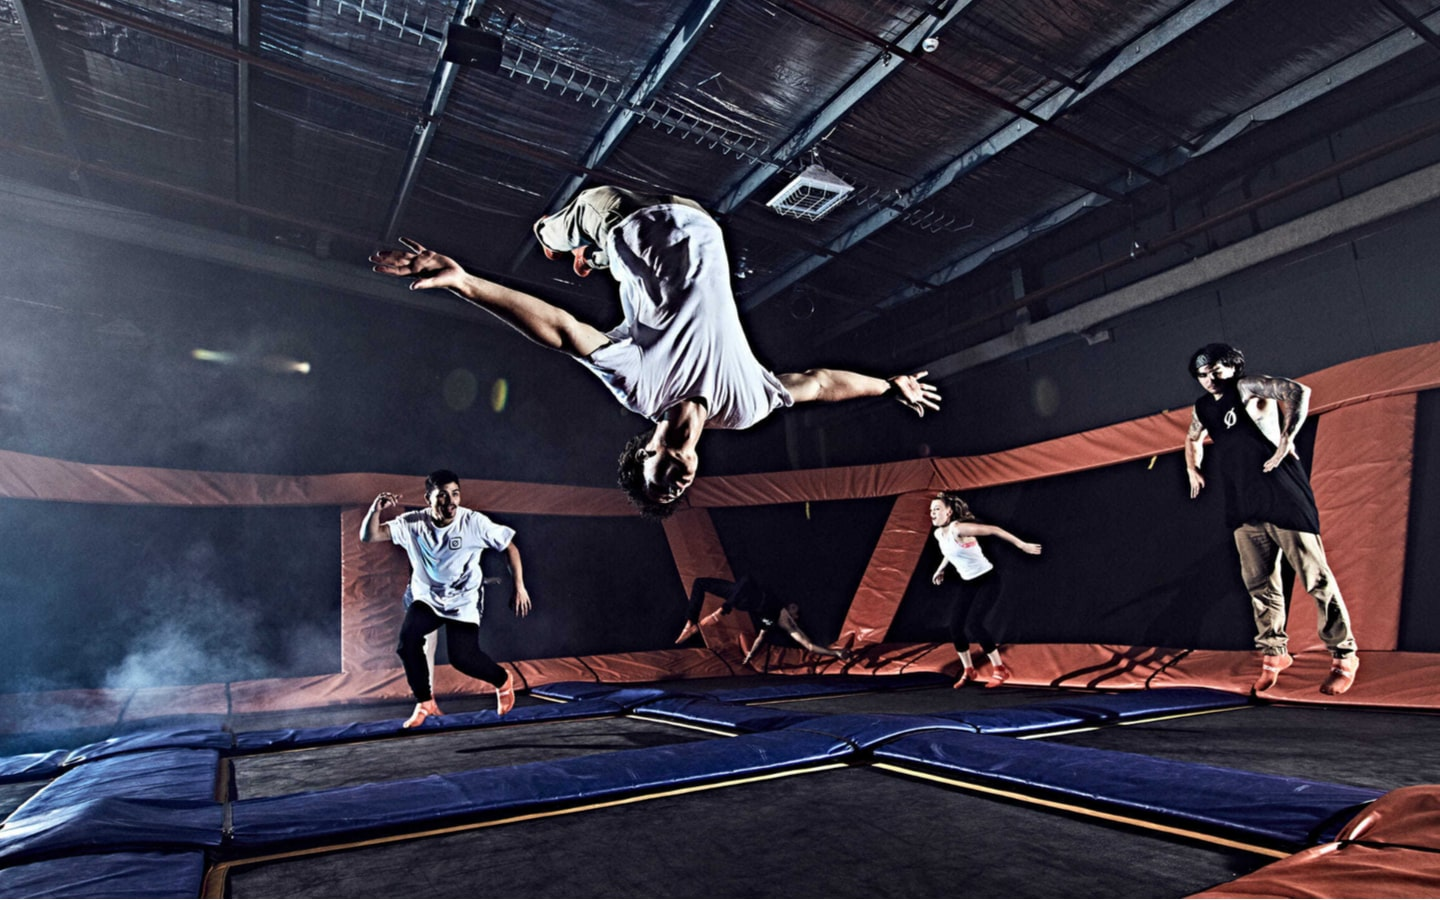 Person doing a back flip at Sky Zone trampoline court